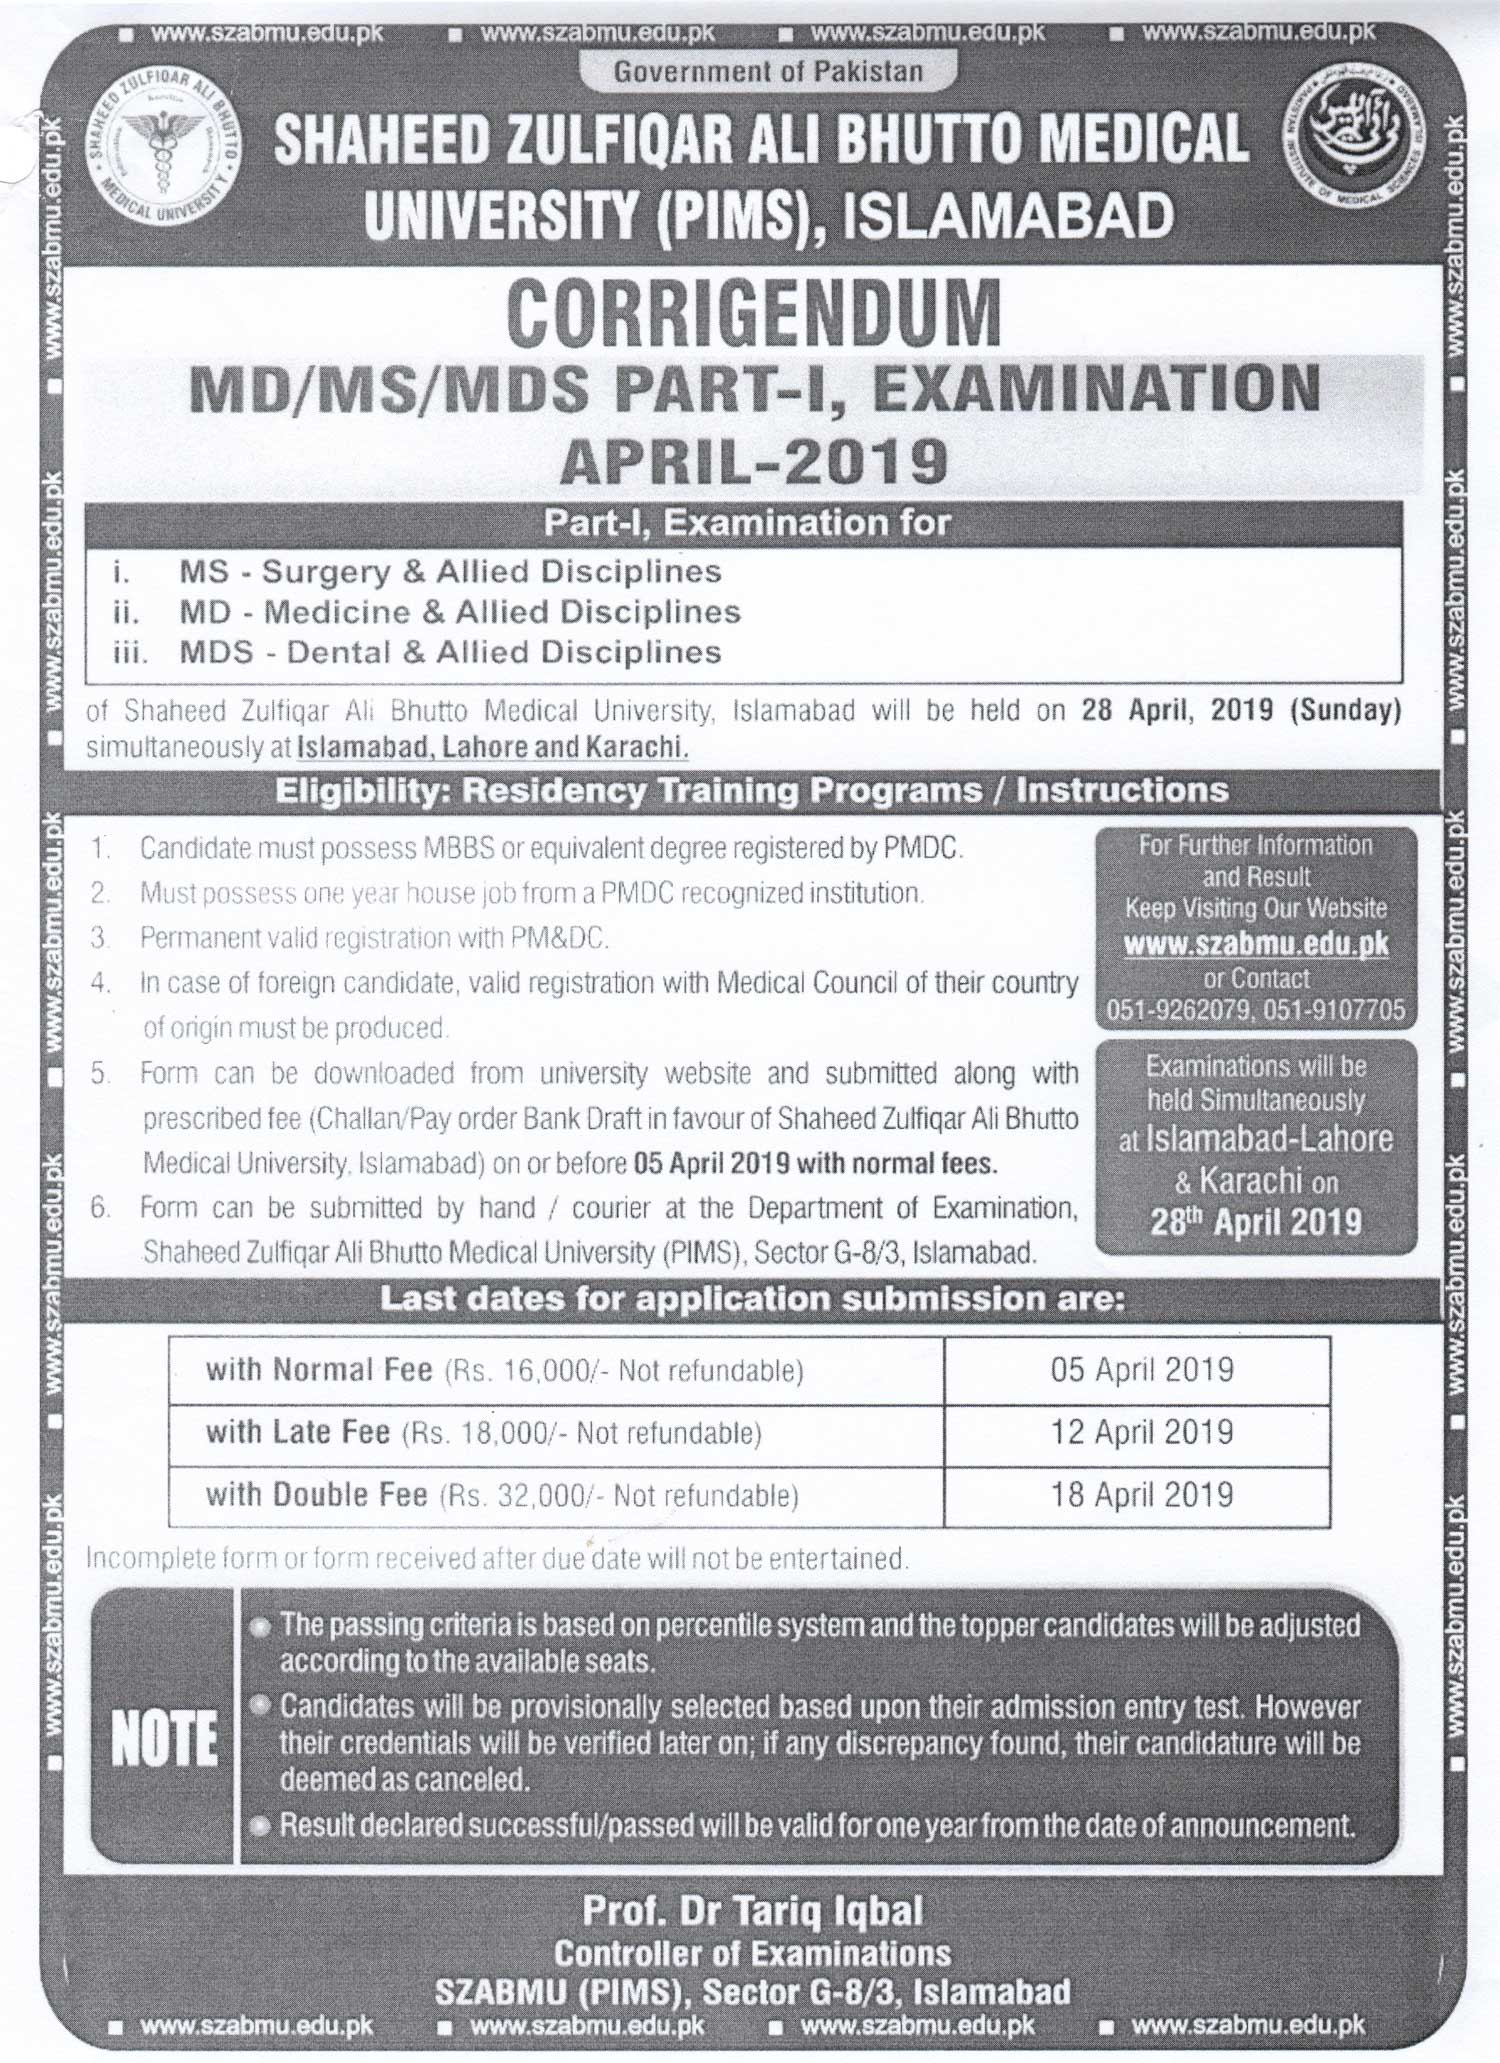 Corrigendum - MD/MS/MDS PART I Examinations April 2019